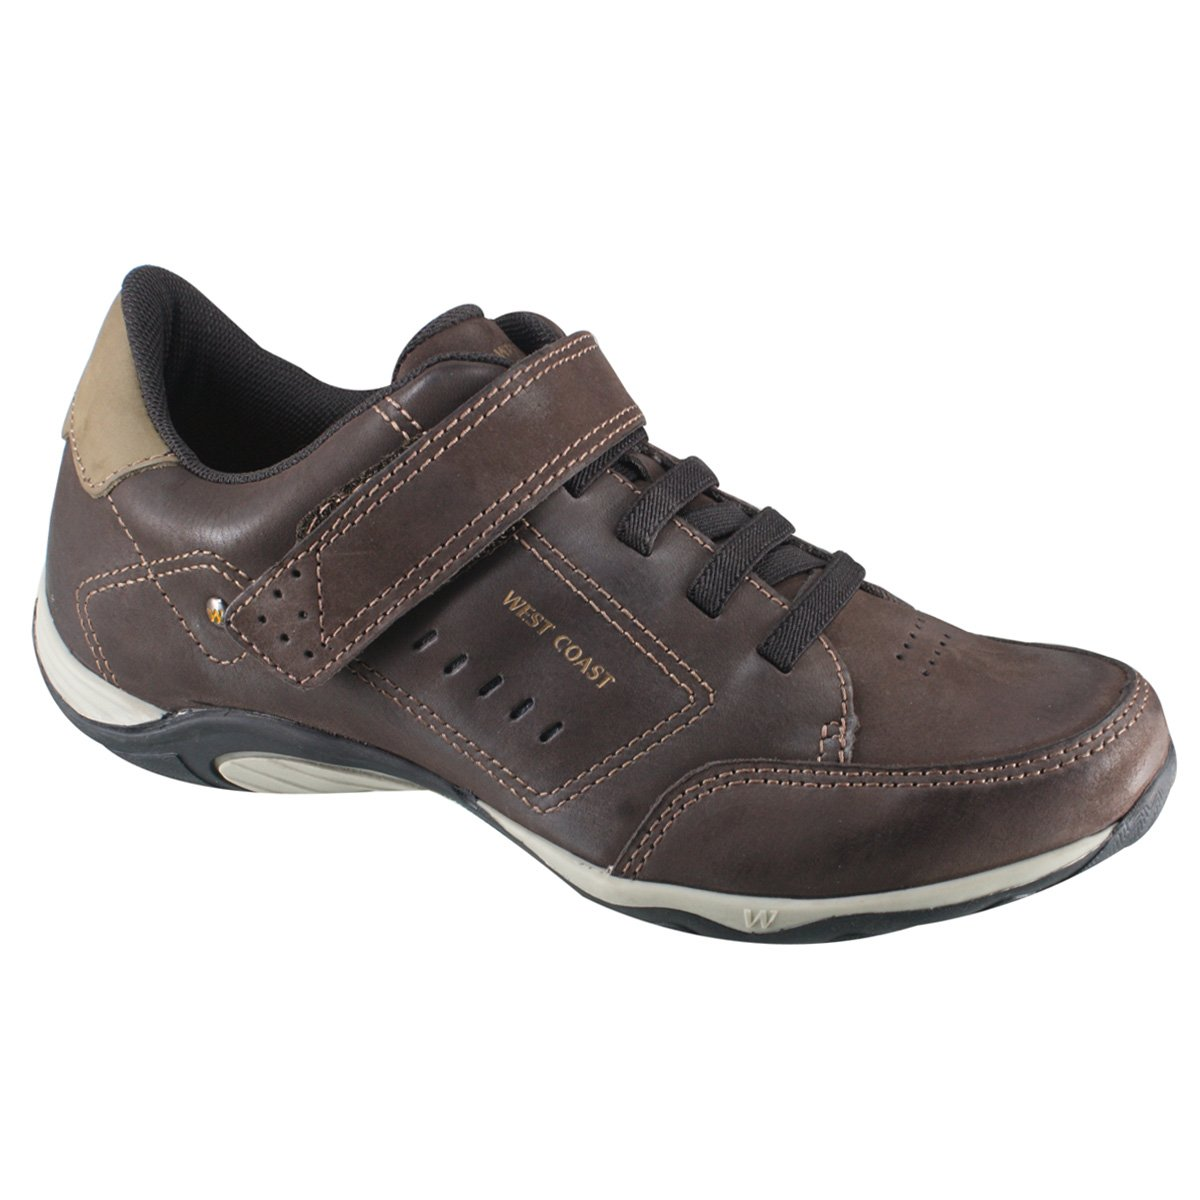 8bf55c2f15 Sapatênis Masculino West Coast 119723CP-2 Cafe Escuro Castor (Rodeo Brush)